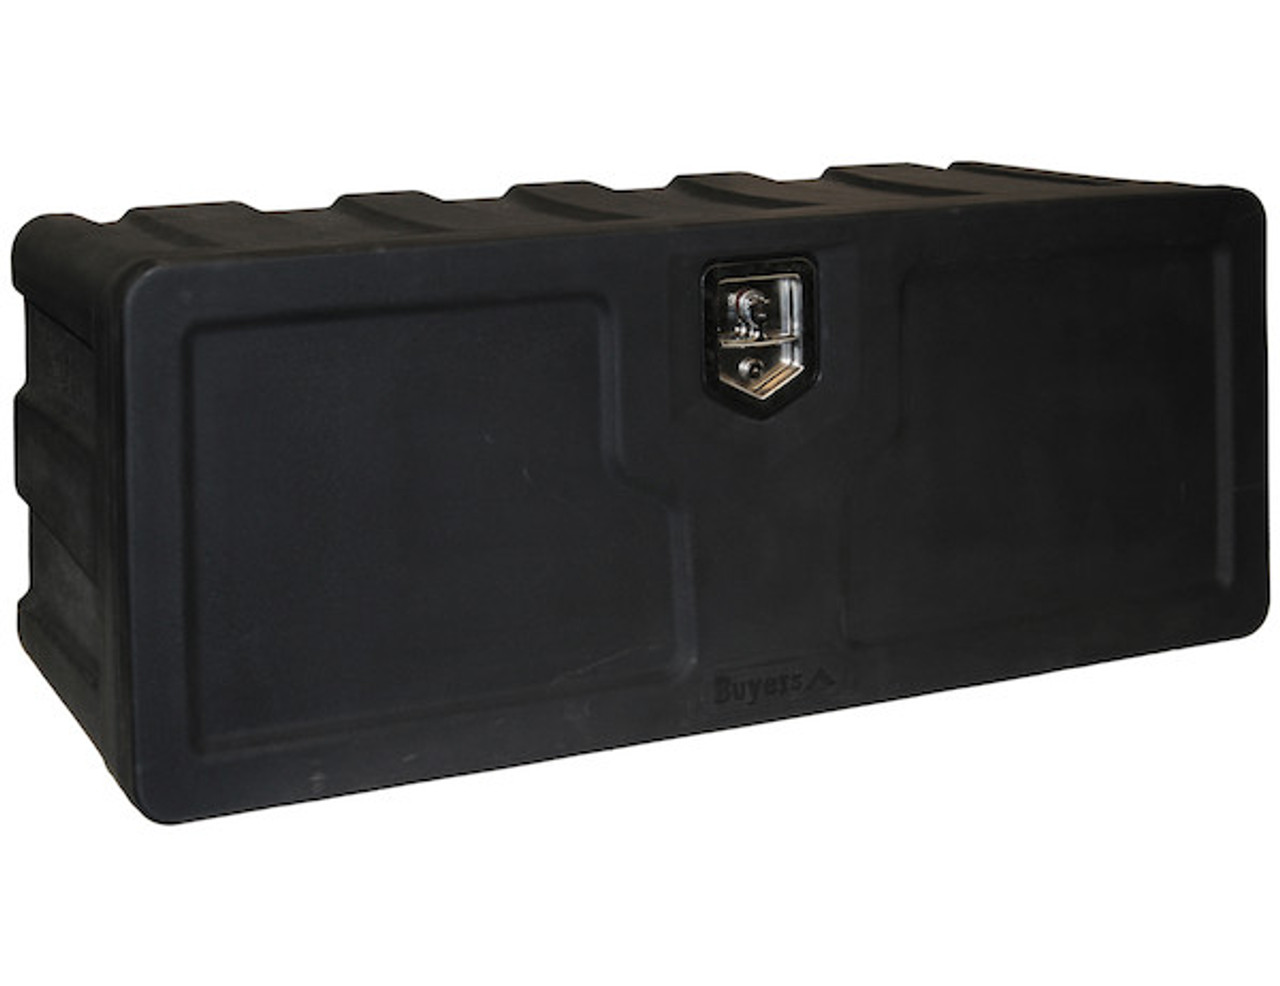 1717110 BUYERS BLACK POLY UNDERBODY TRUCK TOOLBOX